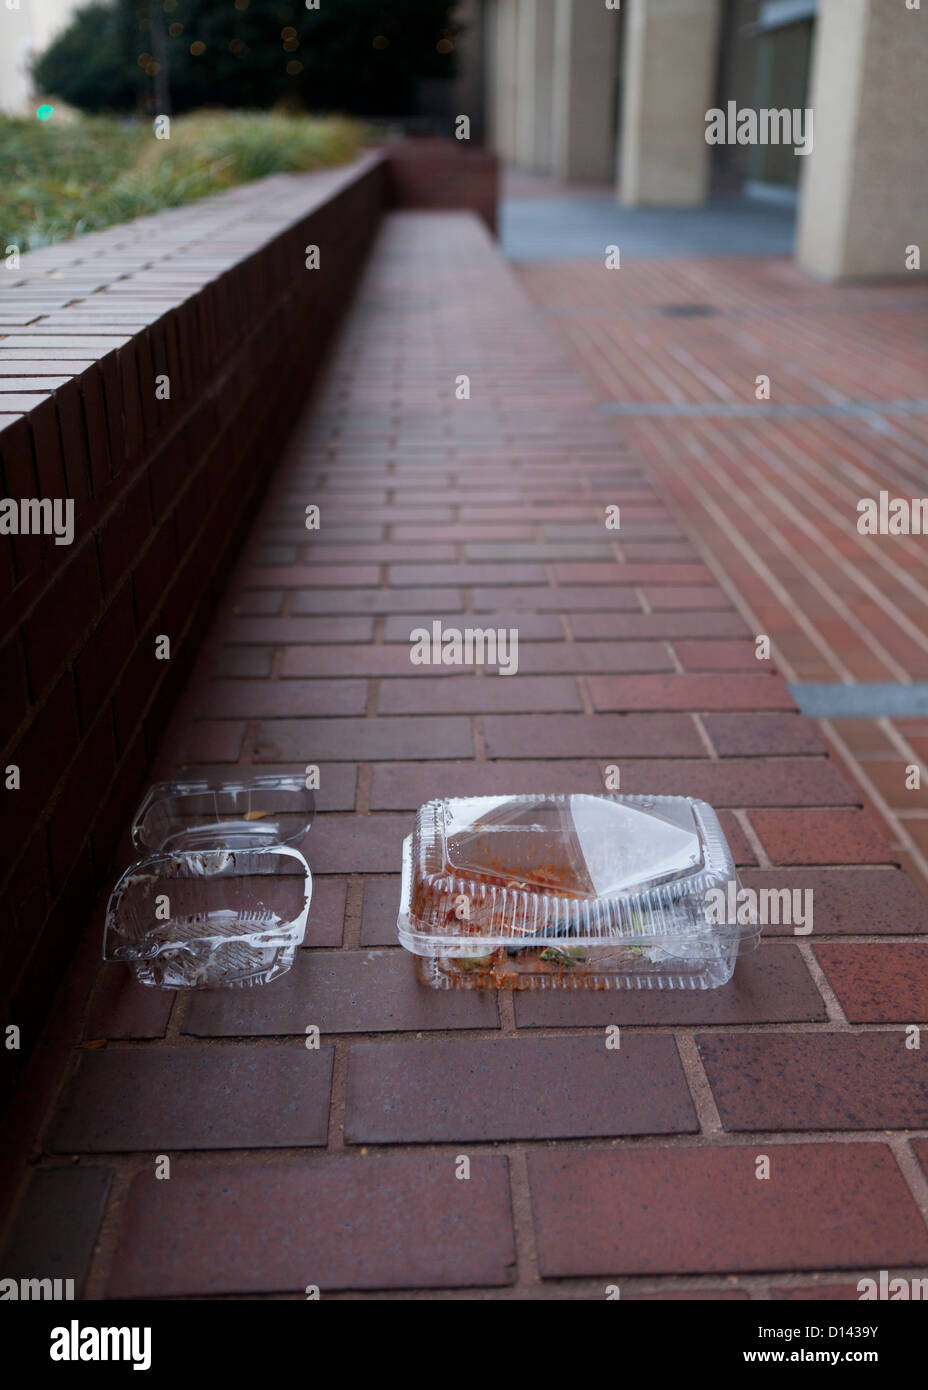 Discarded plastic food containers - Stock Image